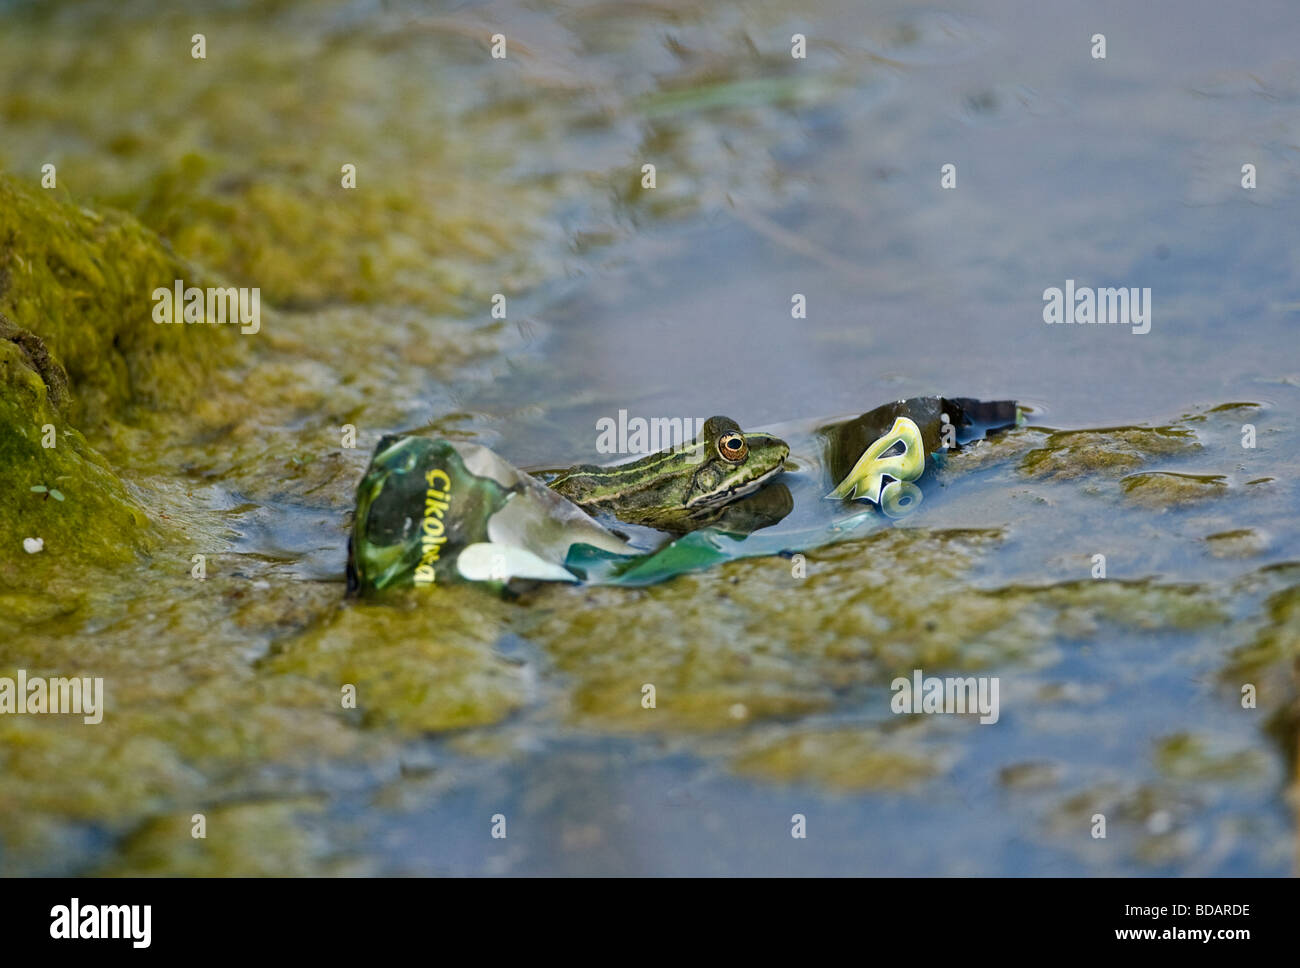 Frog in water beside human garbage discarded turkey - Stock Image